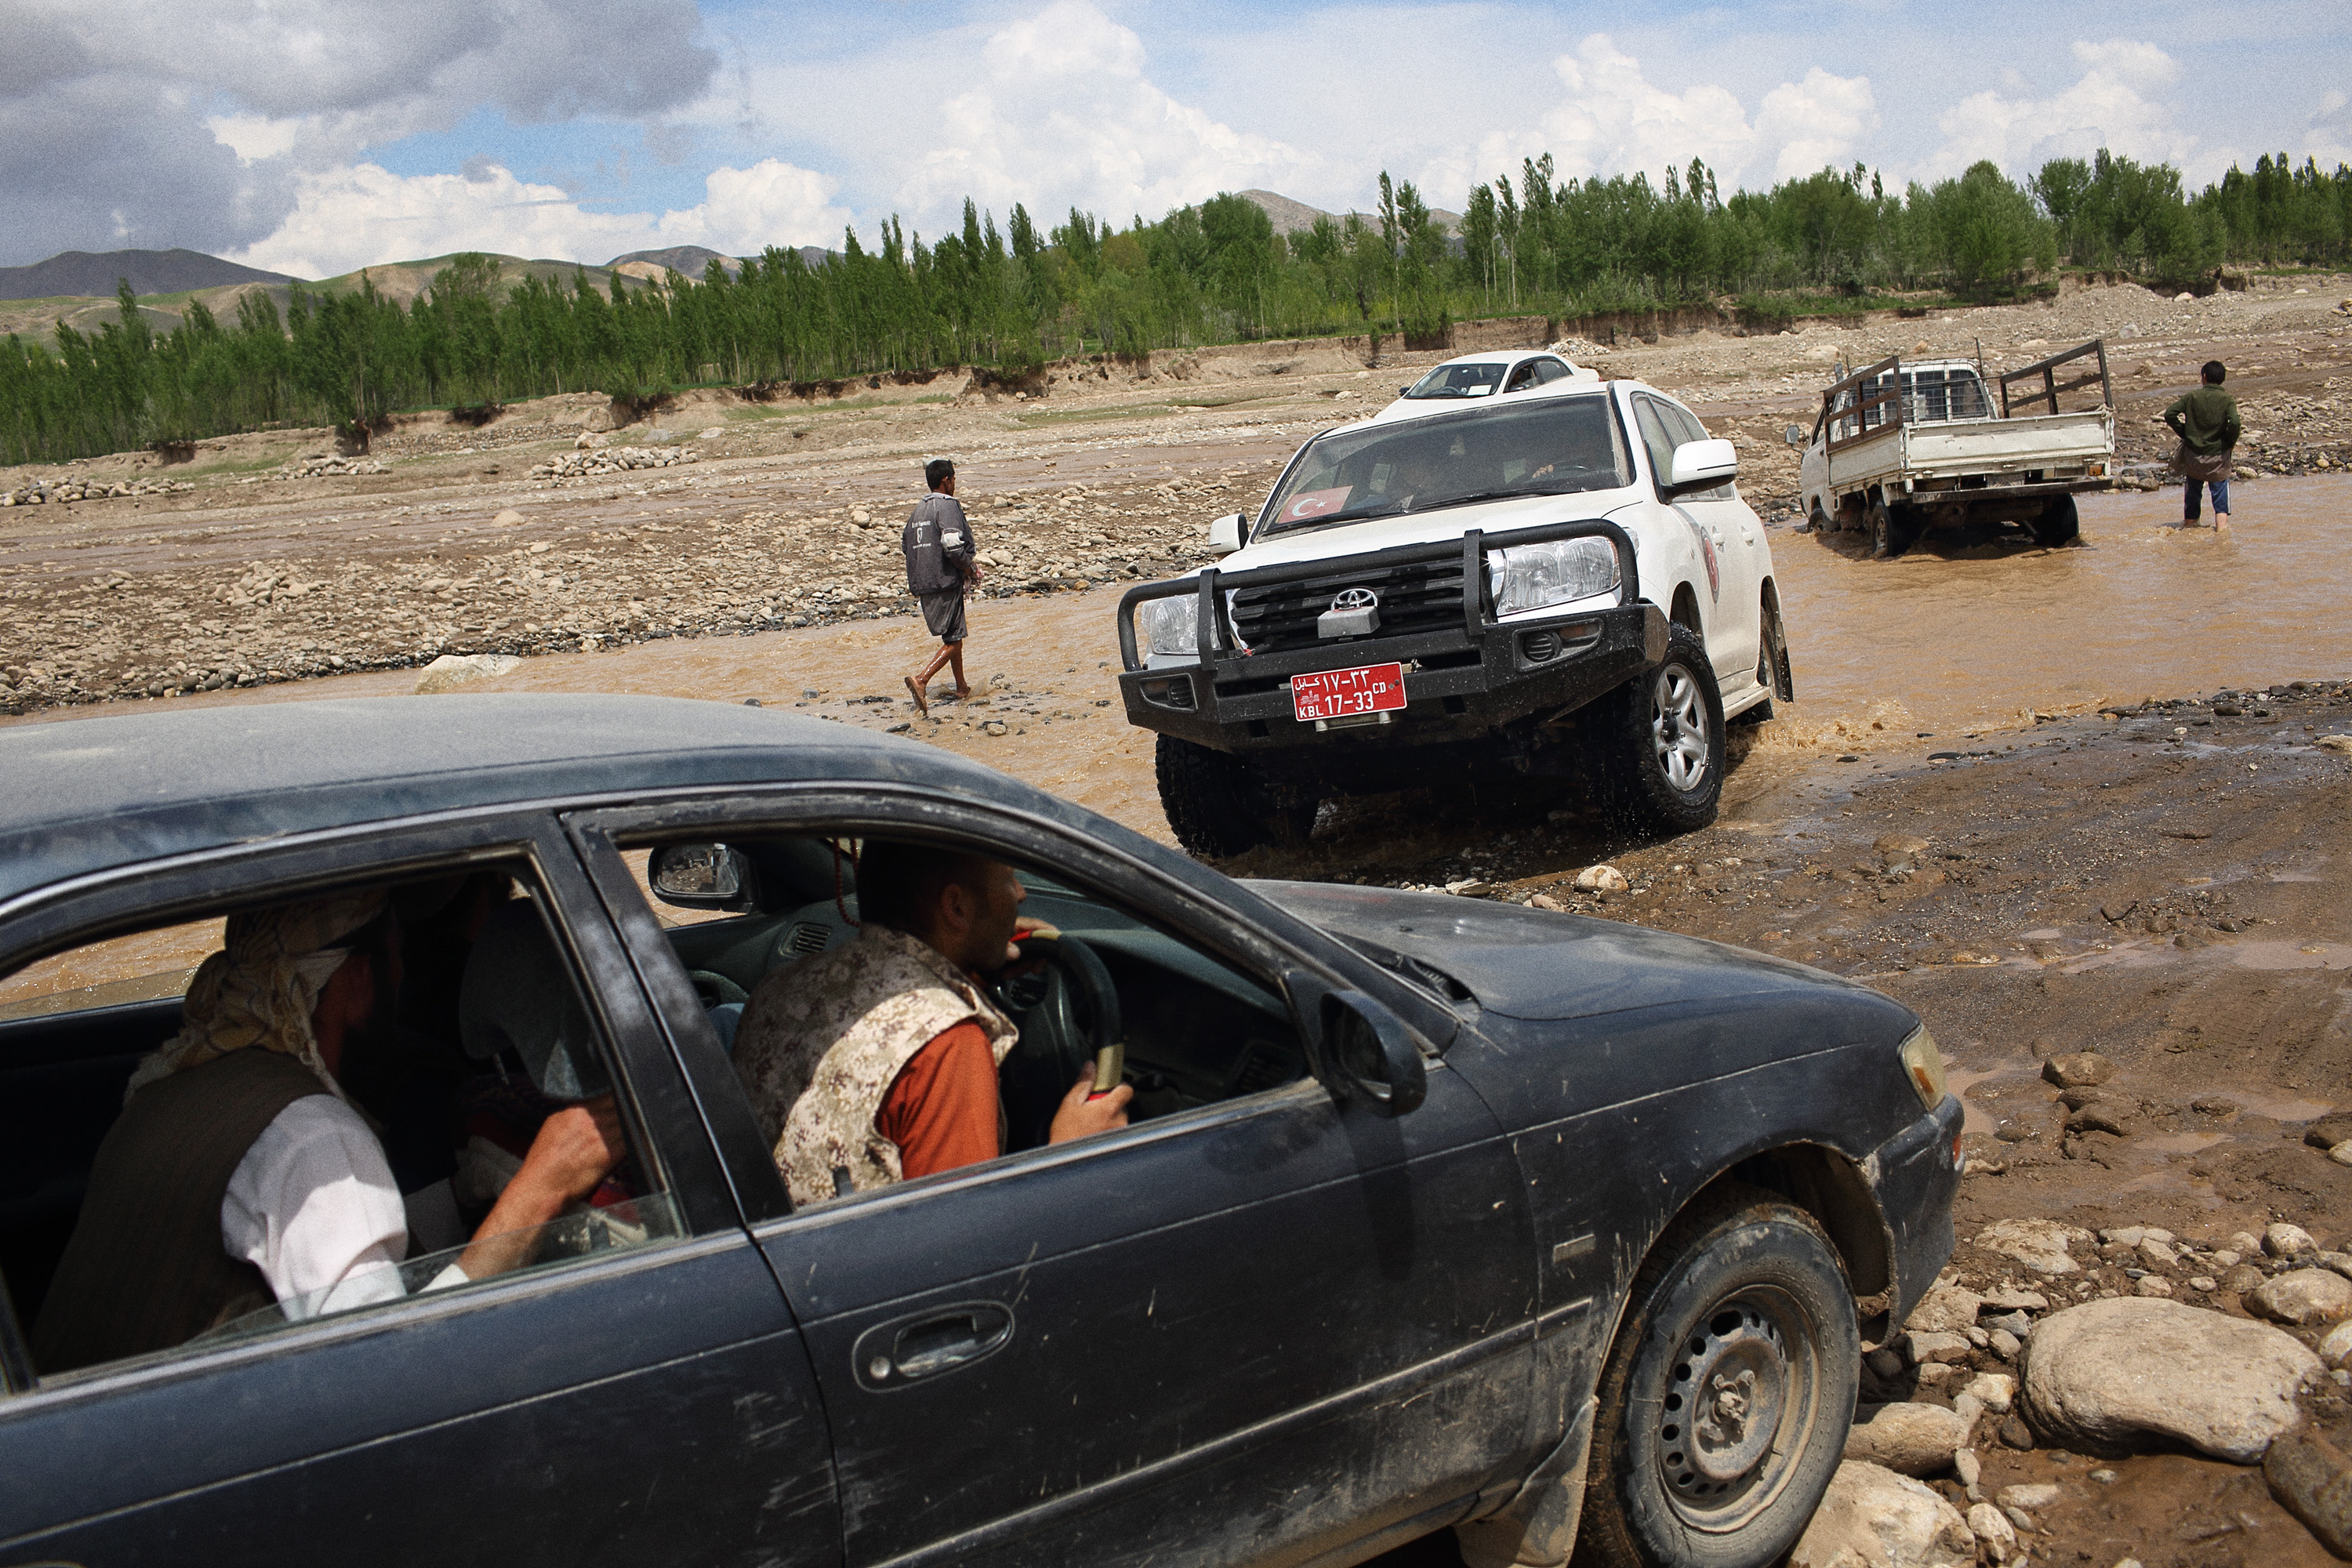 The road from the capital of Badakhshan, Faizabad to Abi Barik, is becoming increasingly hard to pass as trucks filled with aid dig deep ruts in river crossings, further hampering already compromised aid efforts, May 6, 2014.